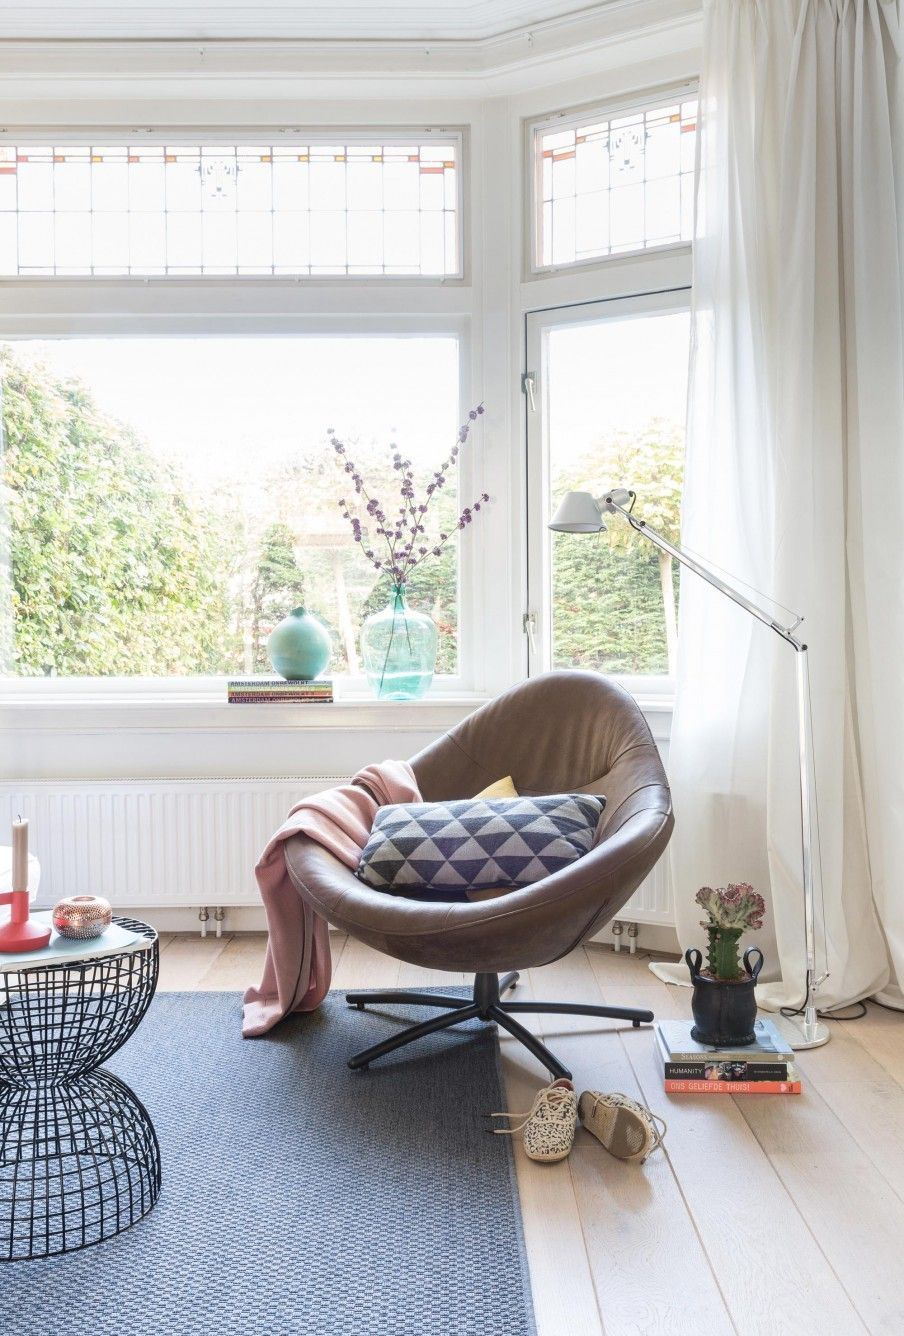 Interieur and Lifestyle on Pinterest